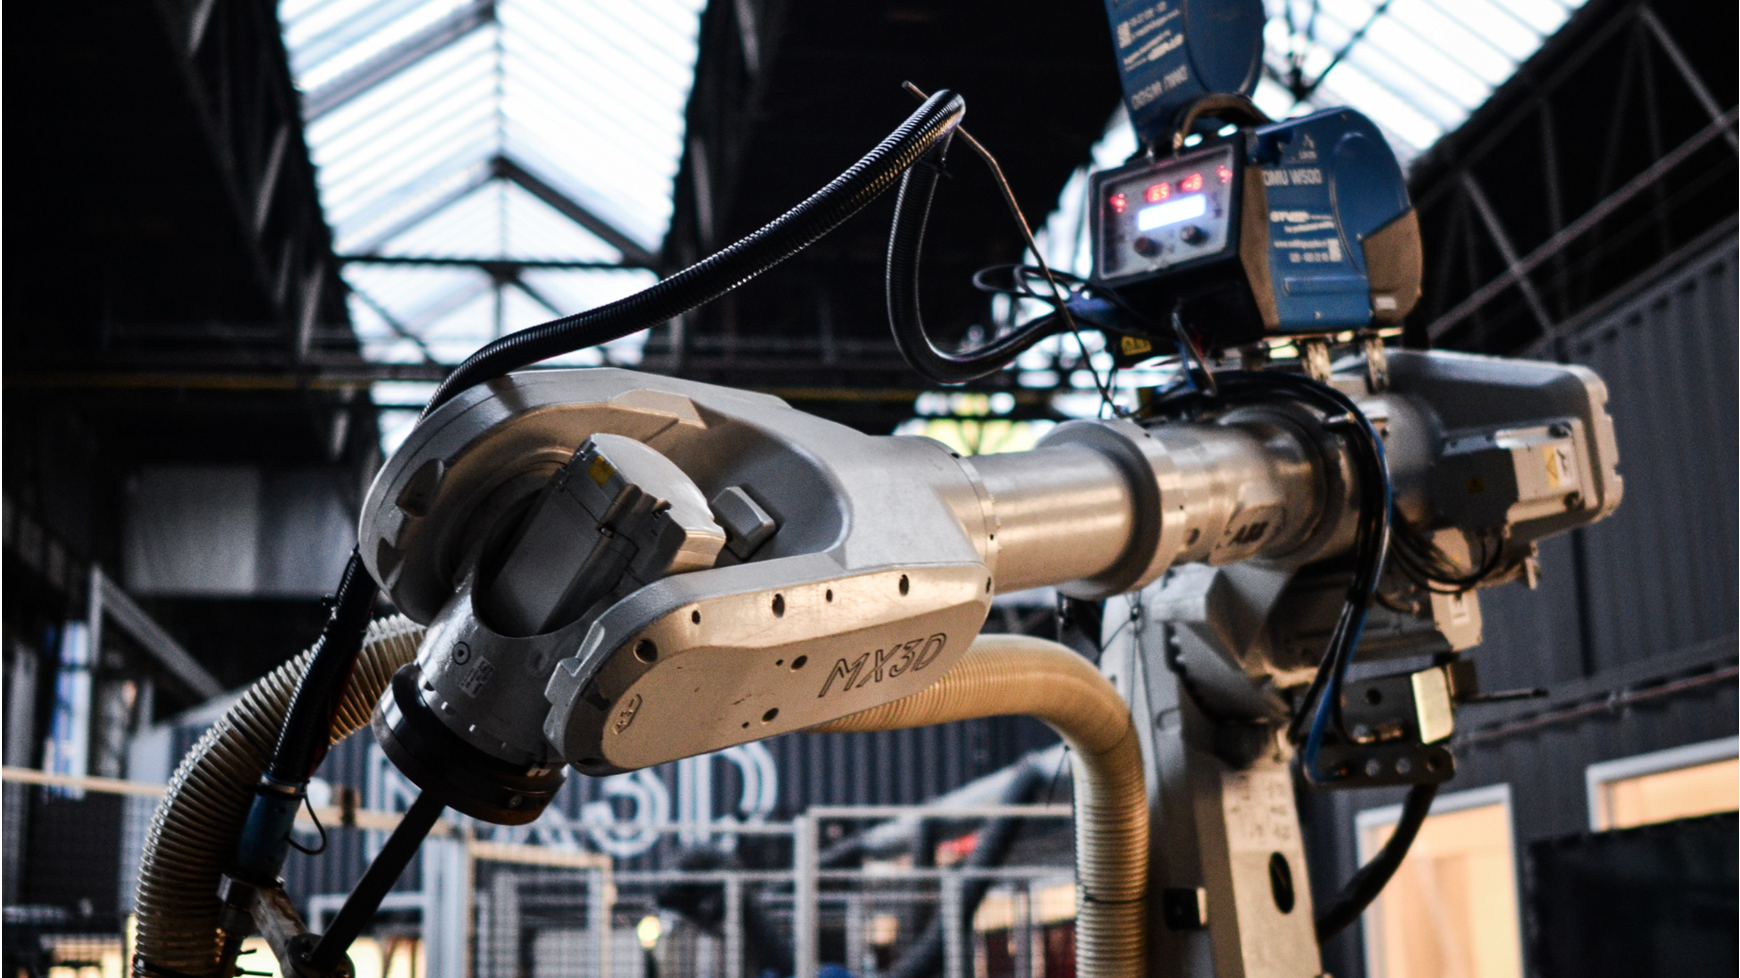 Robot Arm used by MX3D for 3D printing.